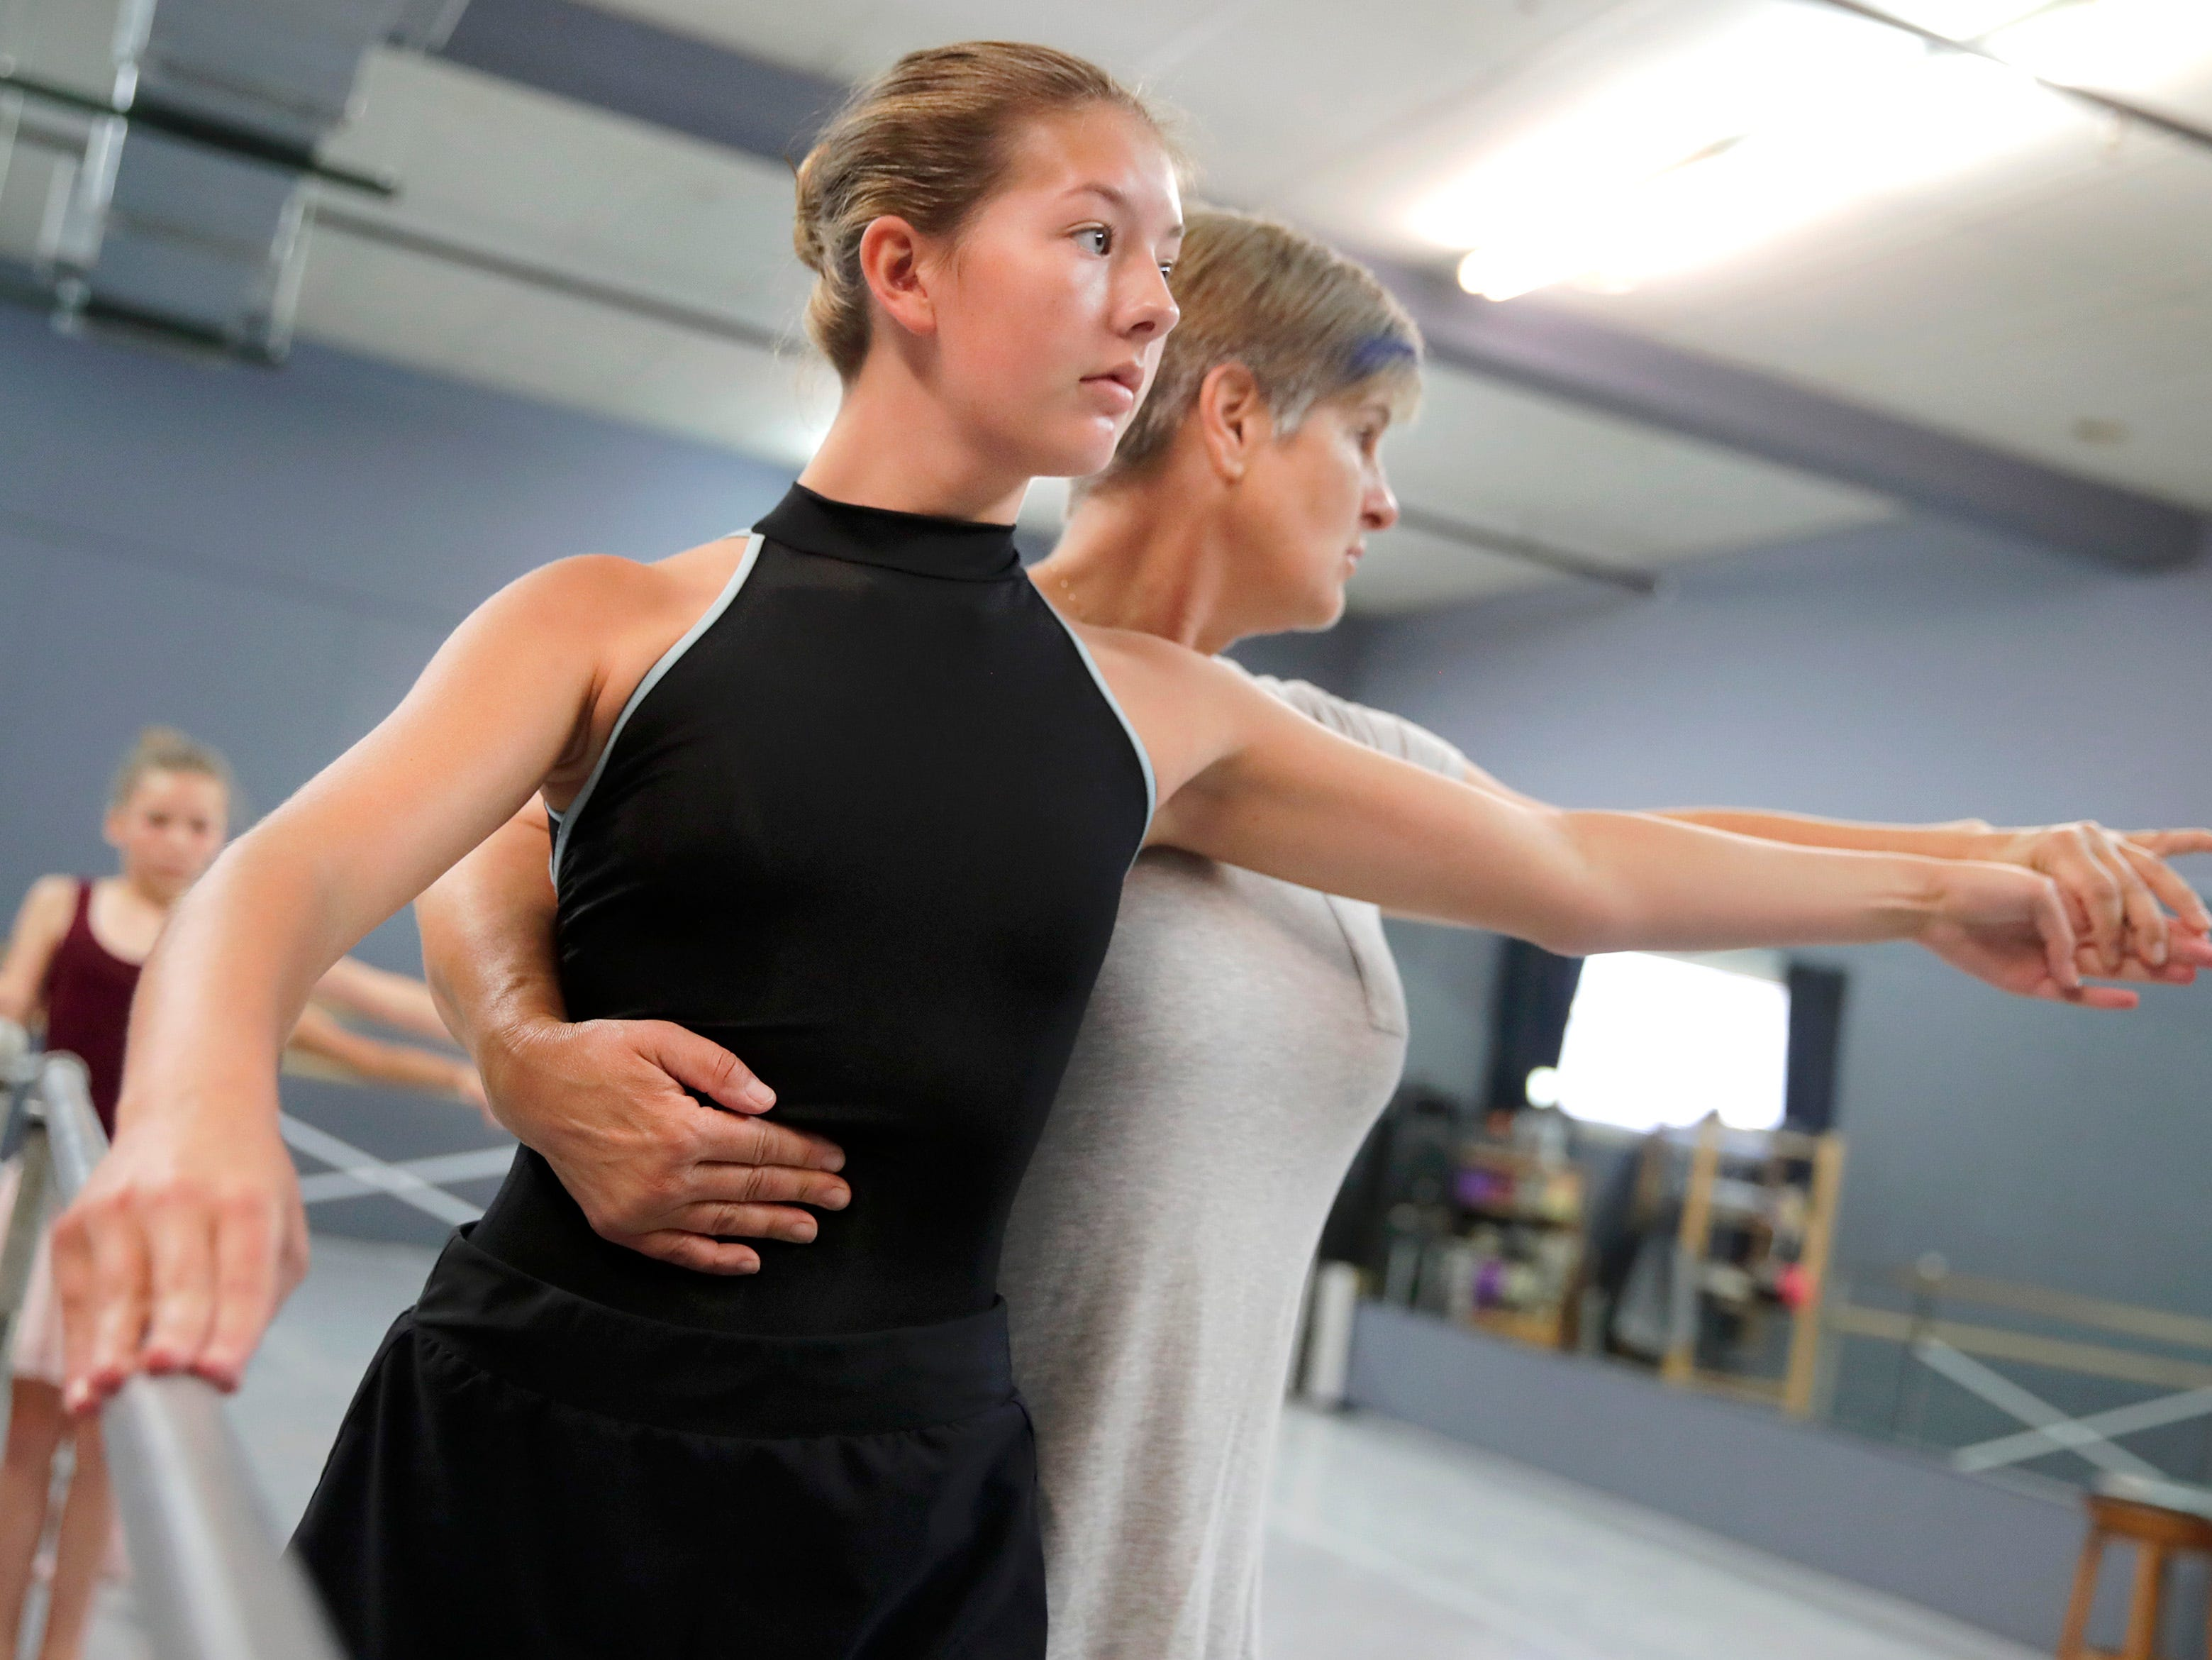 Anne Marie Aberholden, executive director of Valley Academy for the Arts, helps Lydia Van boxtel, 14, of Menasha, with her posture and hand position in a beginner ballet class at the academy Tuesday, July 17, 2018, in Neenah, Wis. 